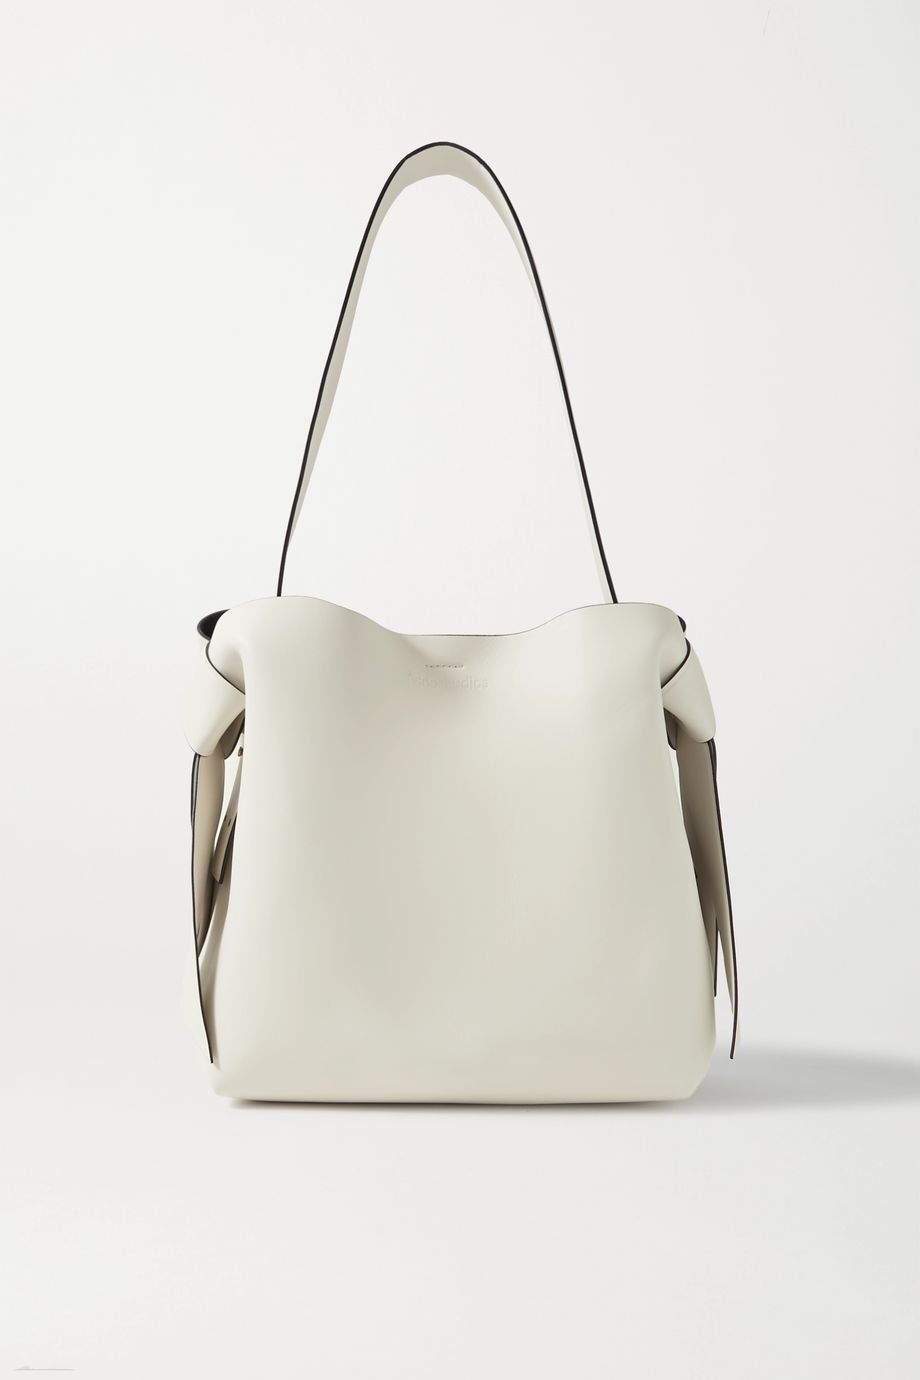 Acne Studios Knotted leather shoulder bag